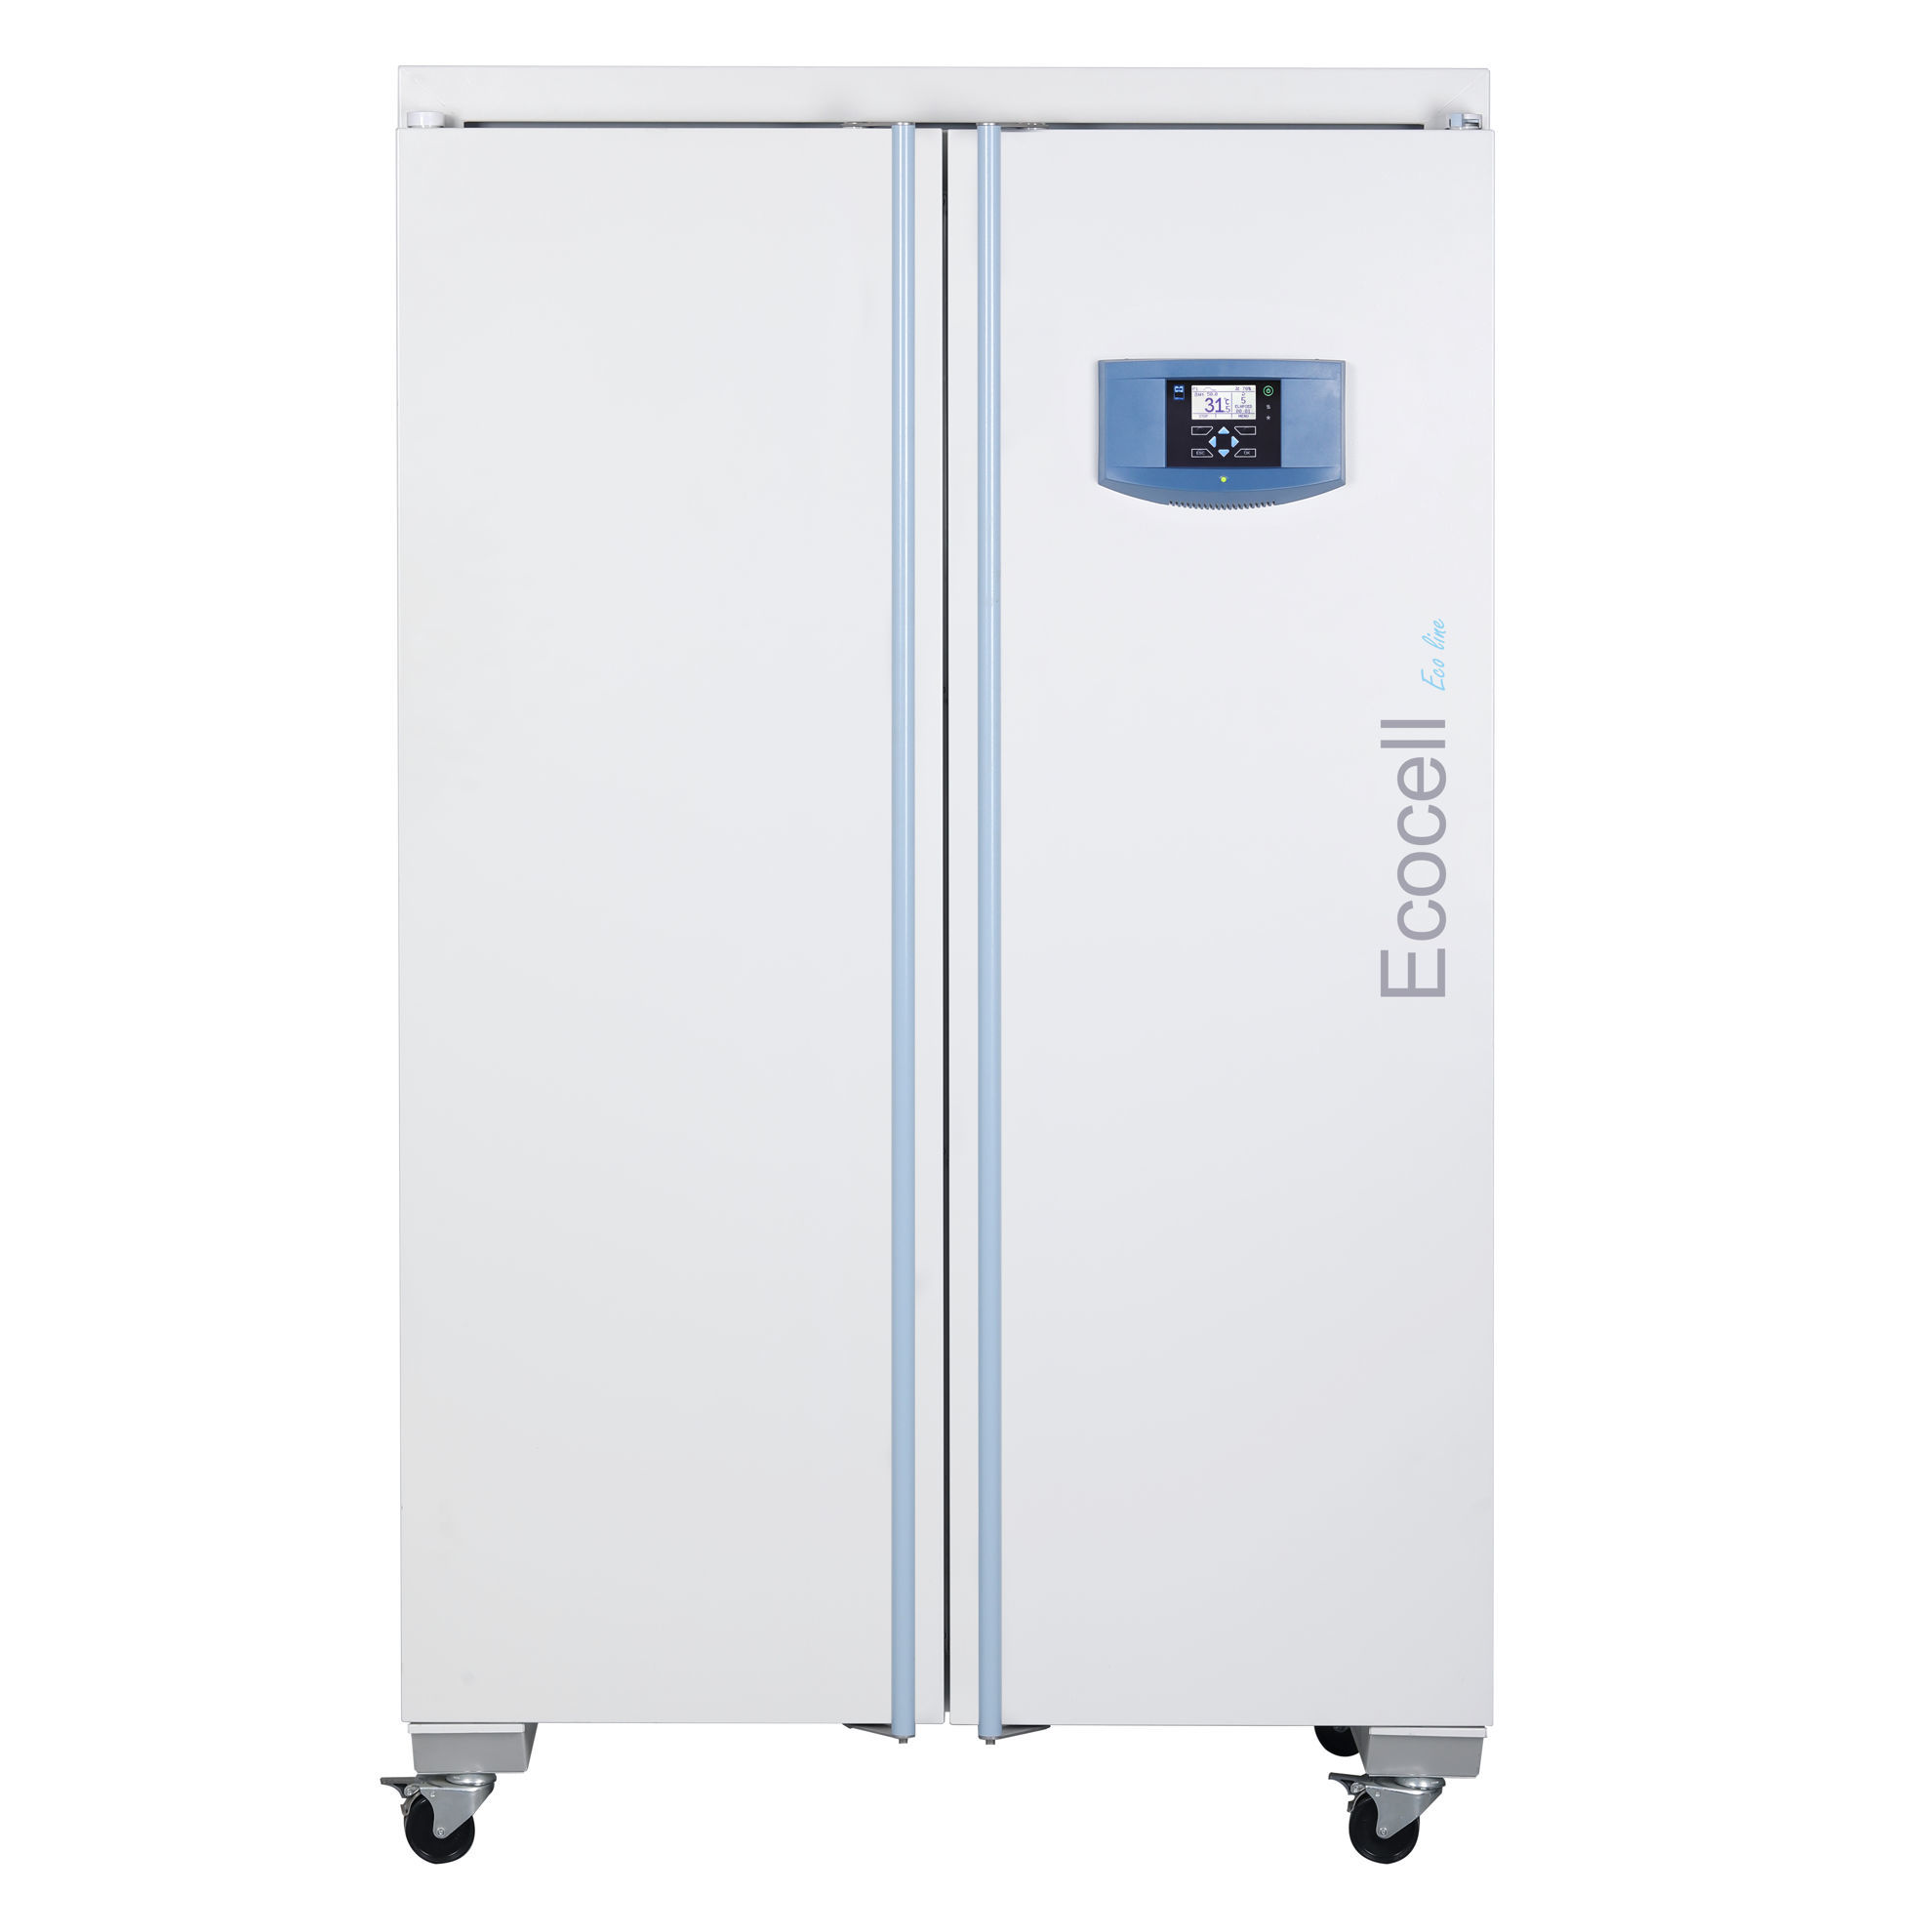 Picture of BMT Ecocell ECO Gravity Convection Ovens - MC000205